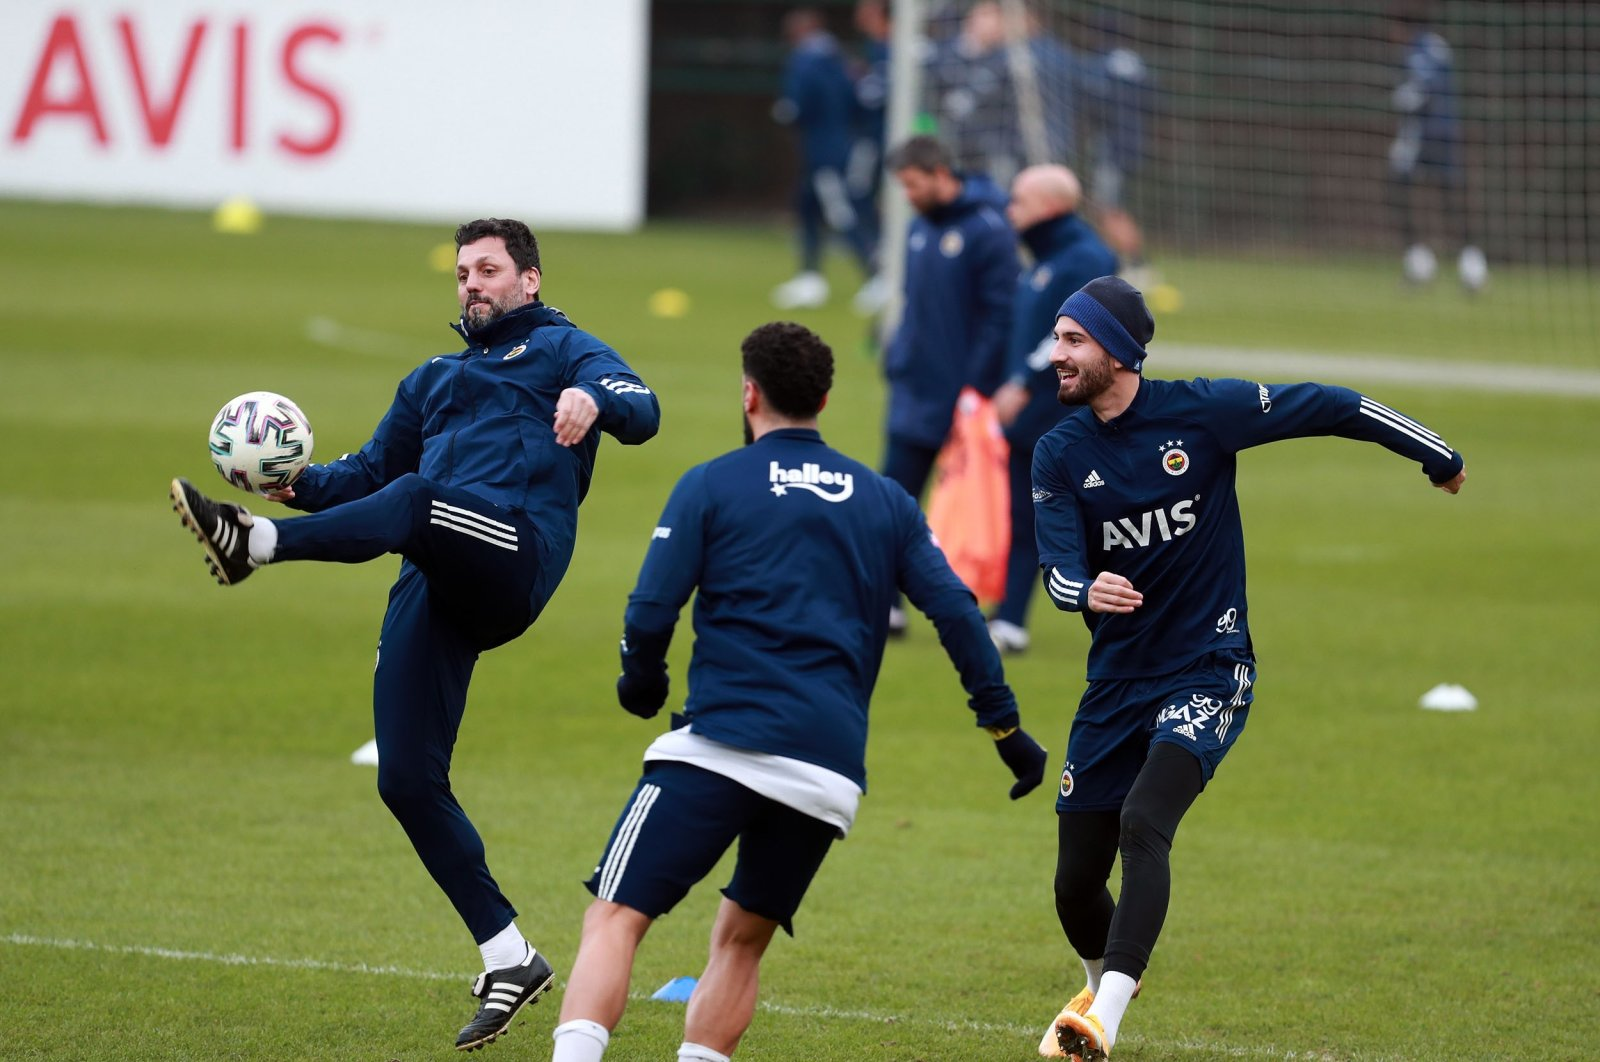 Fenerbahçe players train ahead of their Süper Lig match against Kayserispor, Istanbul, Turkey, Jan. 23, 2021.